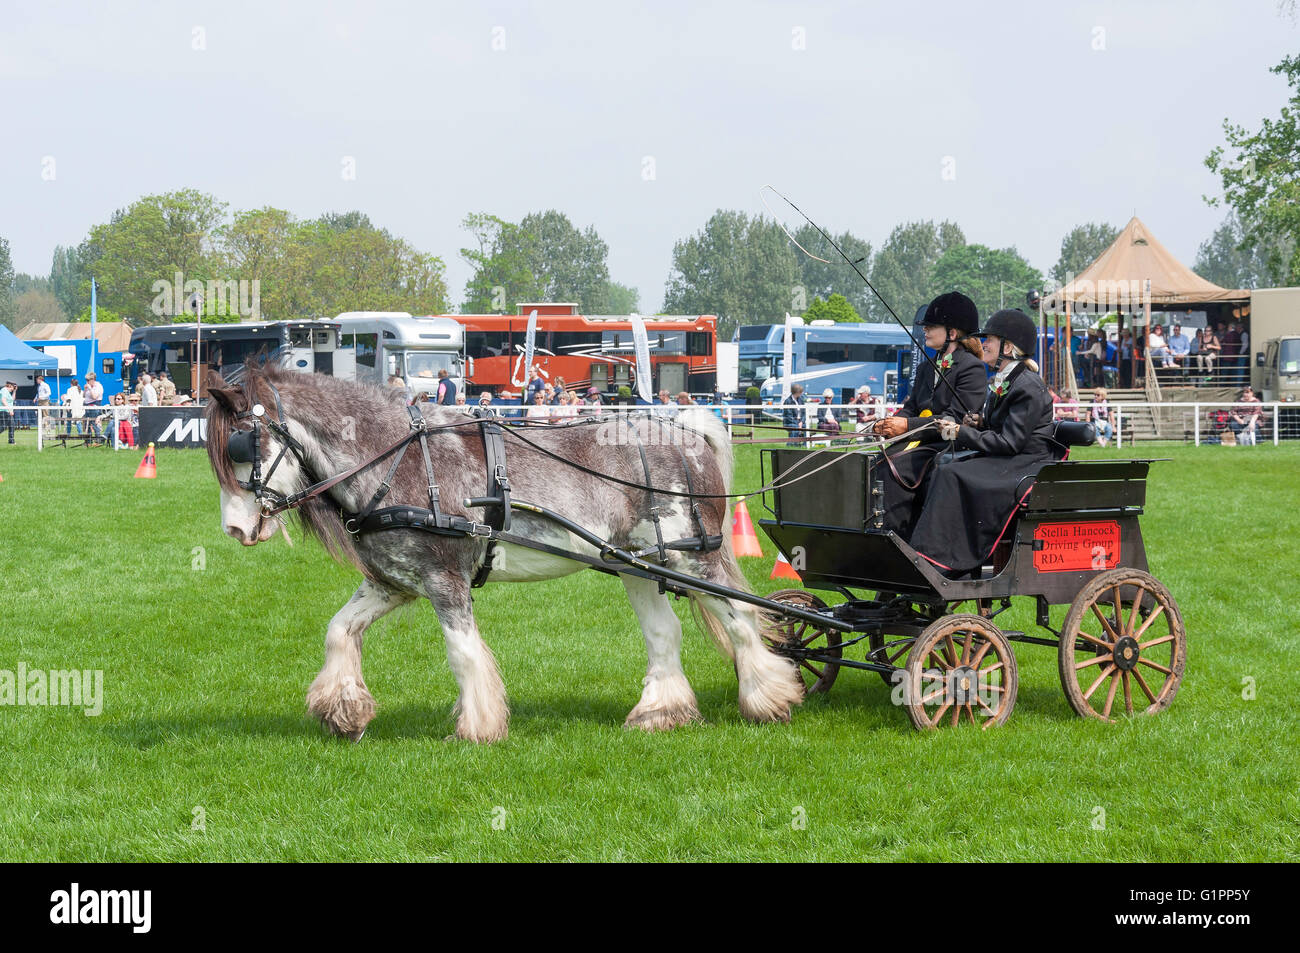 Mini Horse Carriage Riding At Royal Windsor Show Home Park Berkshire England United Kingdom